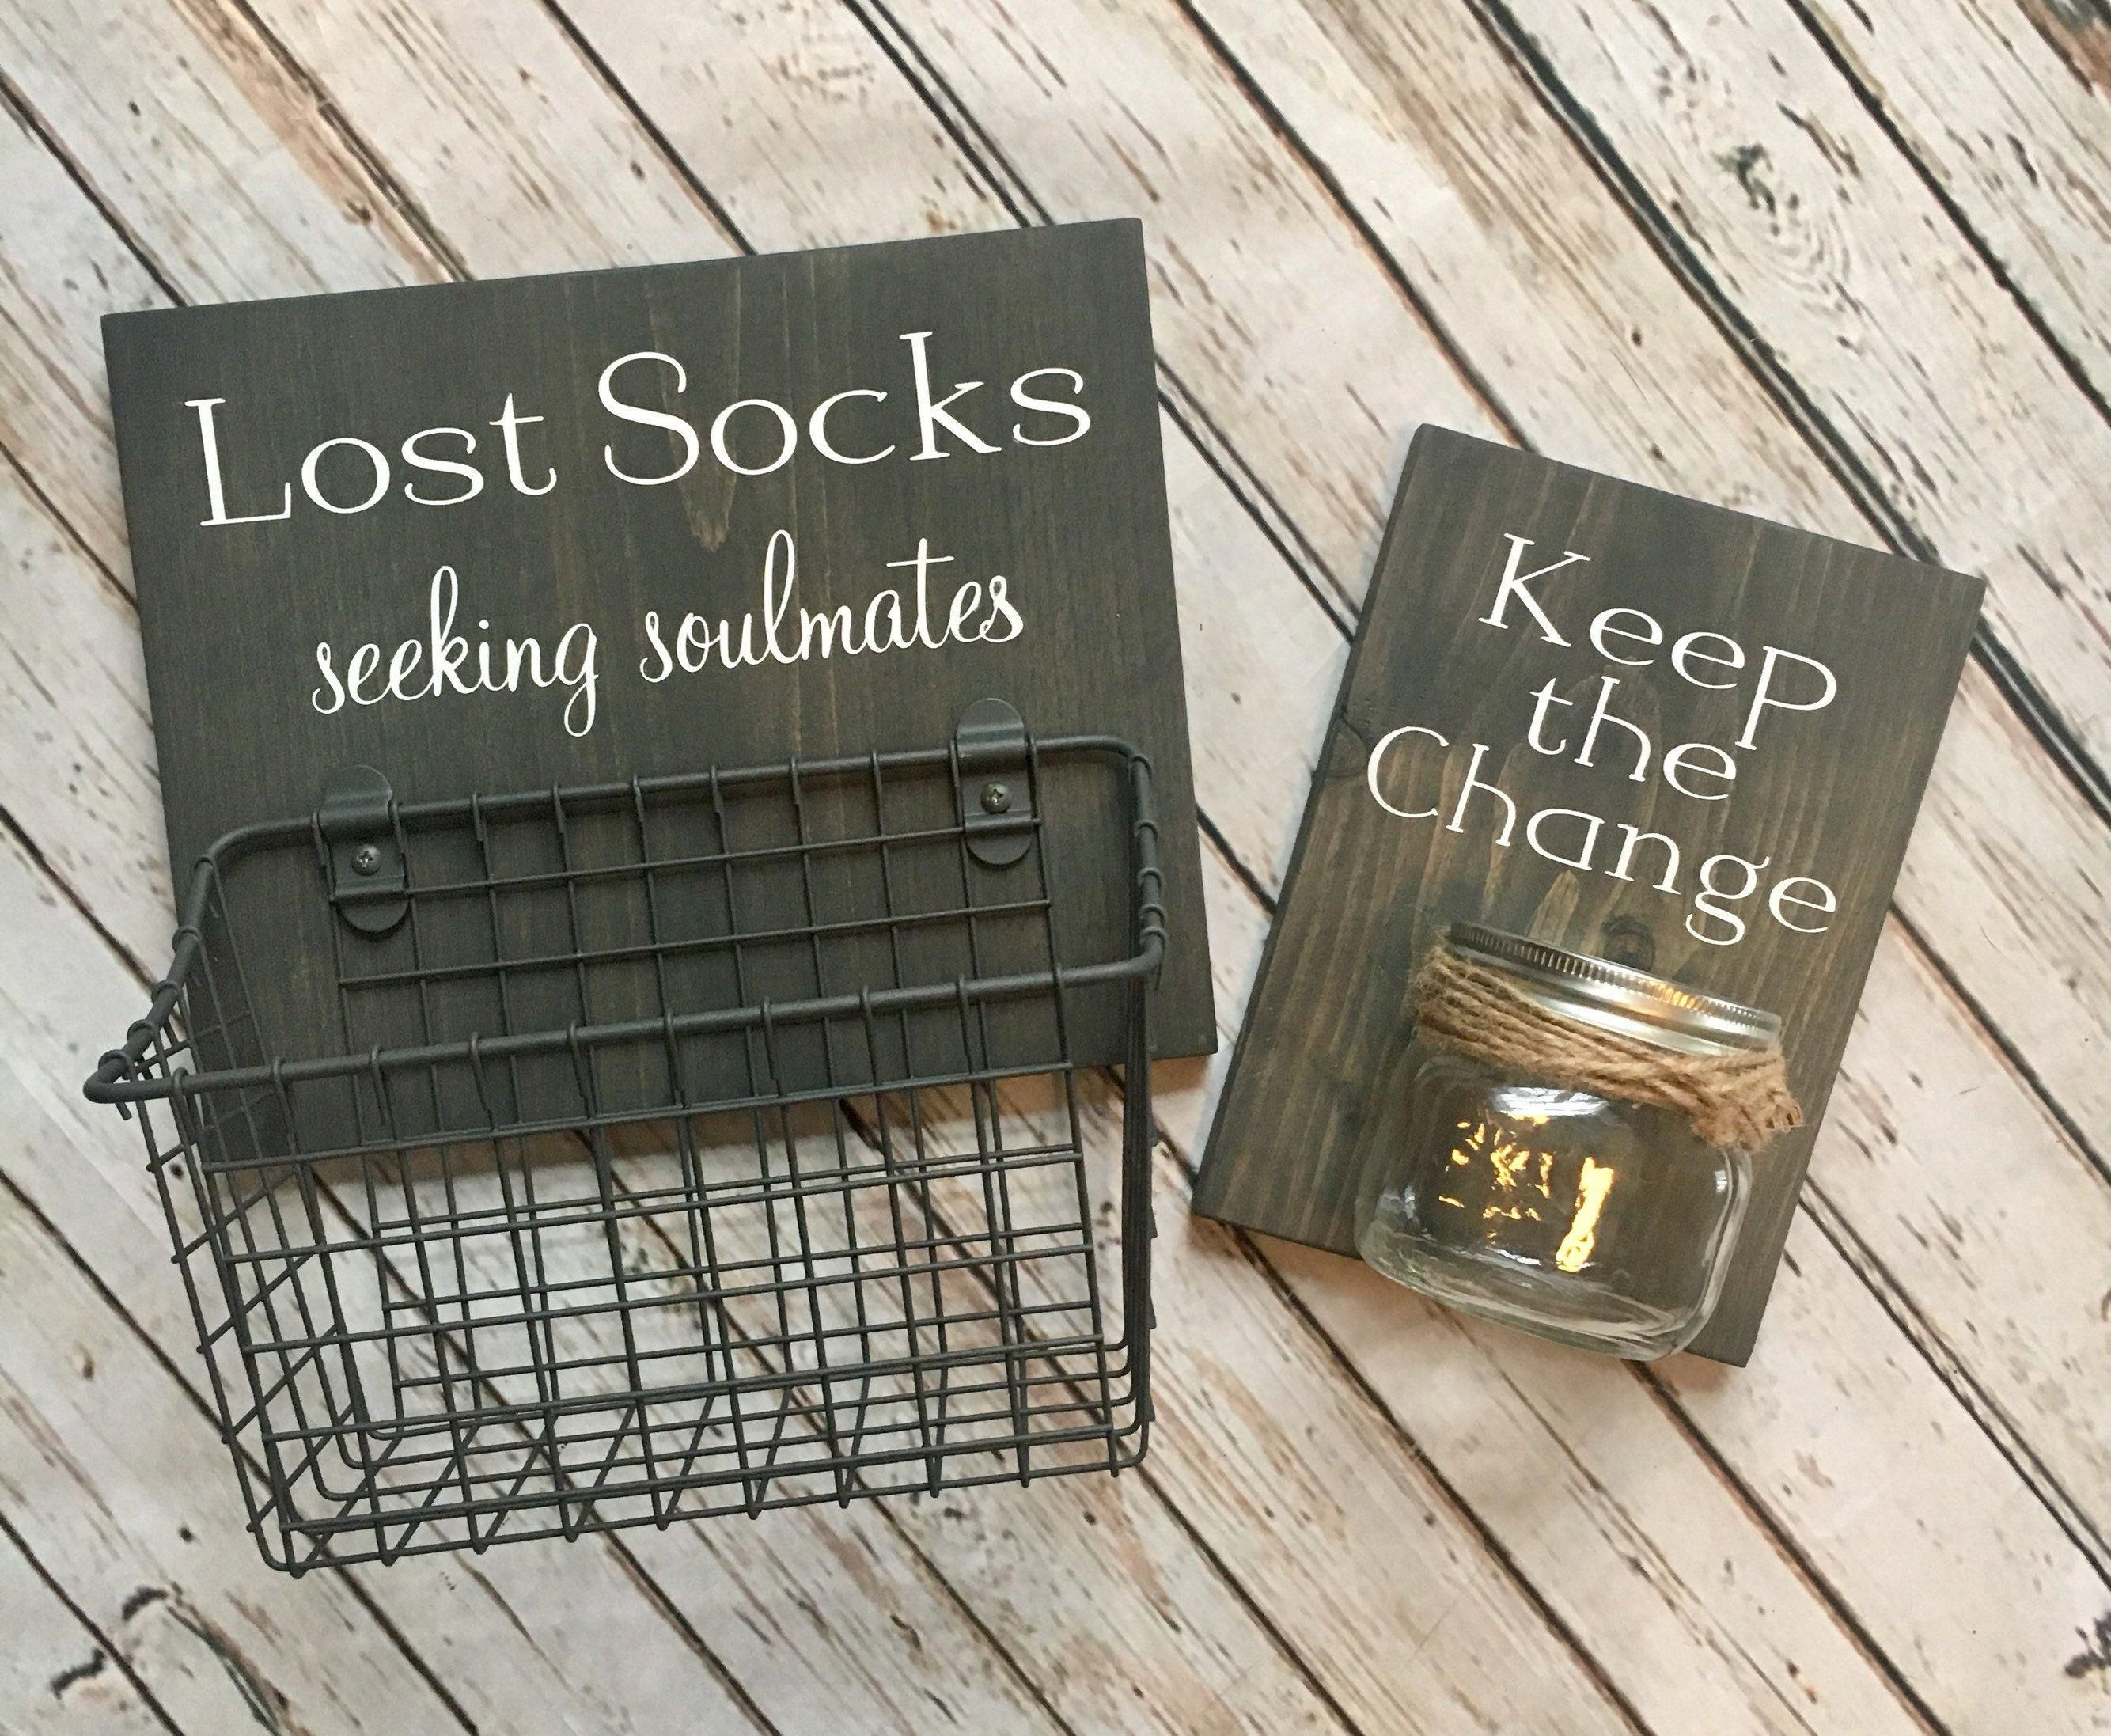 Laundry Room Sign Combo | Keep the Change AND Lost Socks - Seeking Soulmates (or Solemates) | wood sign w